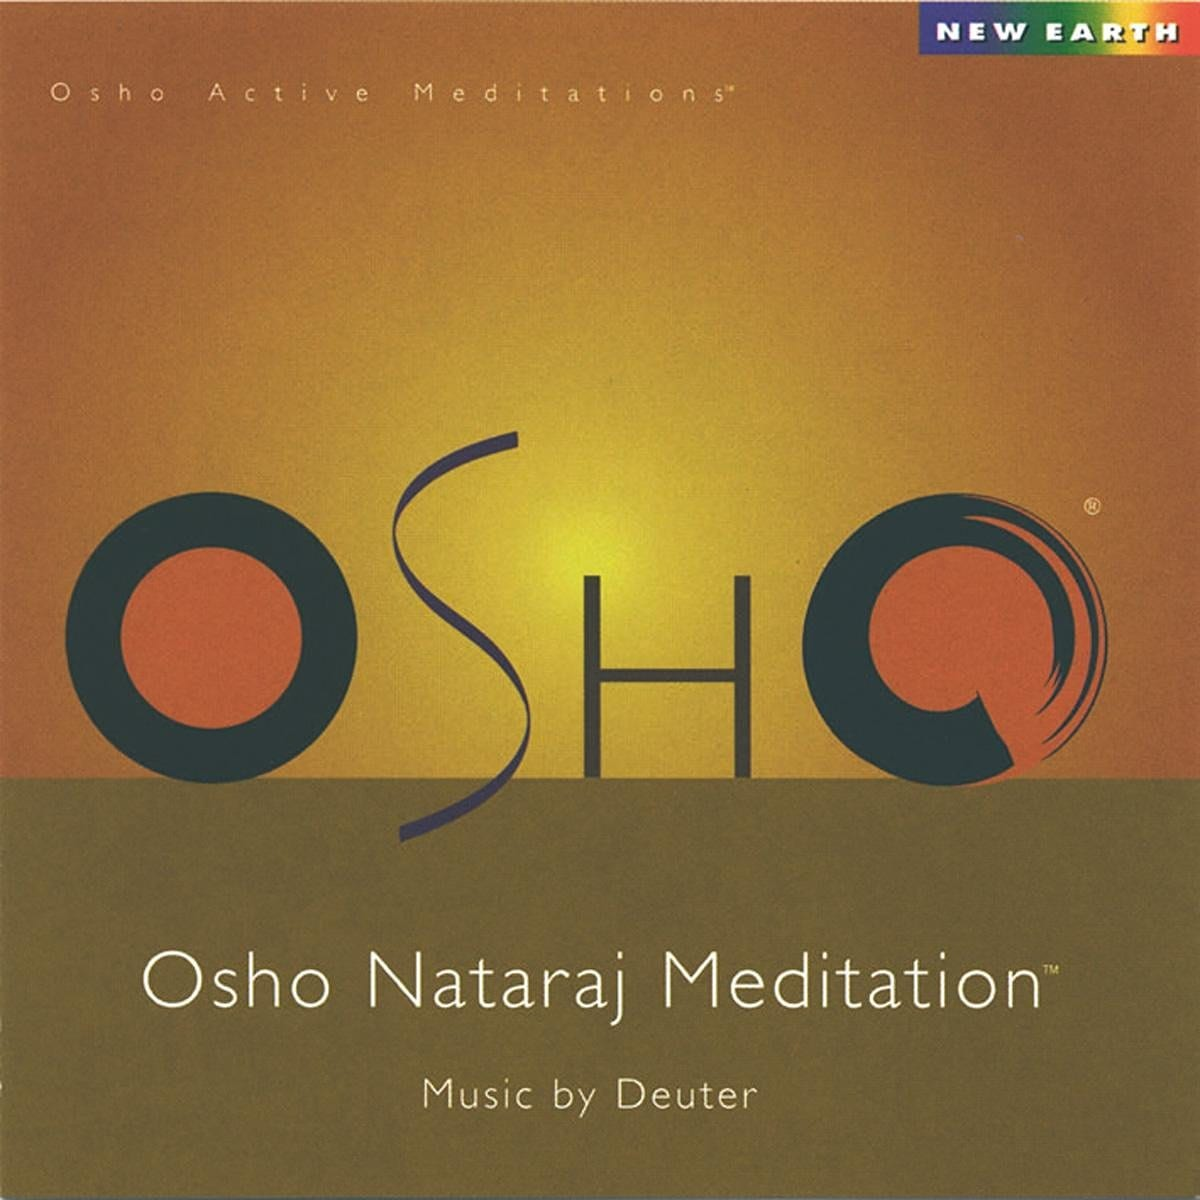 Osho Active Meditations - The New Earth Records Collection